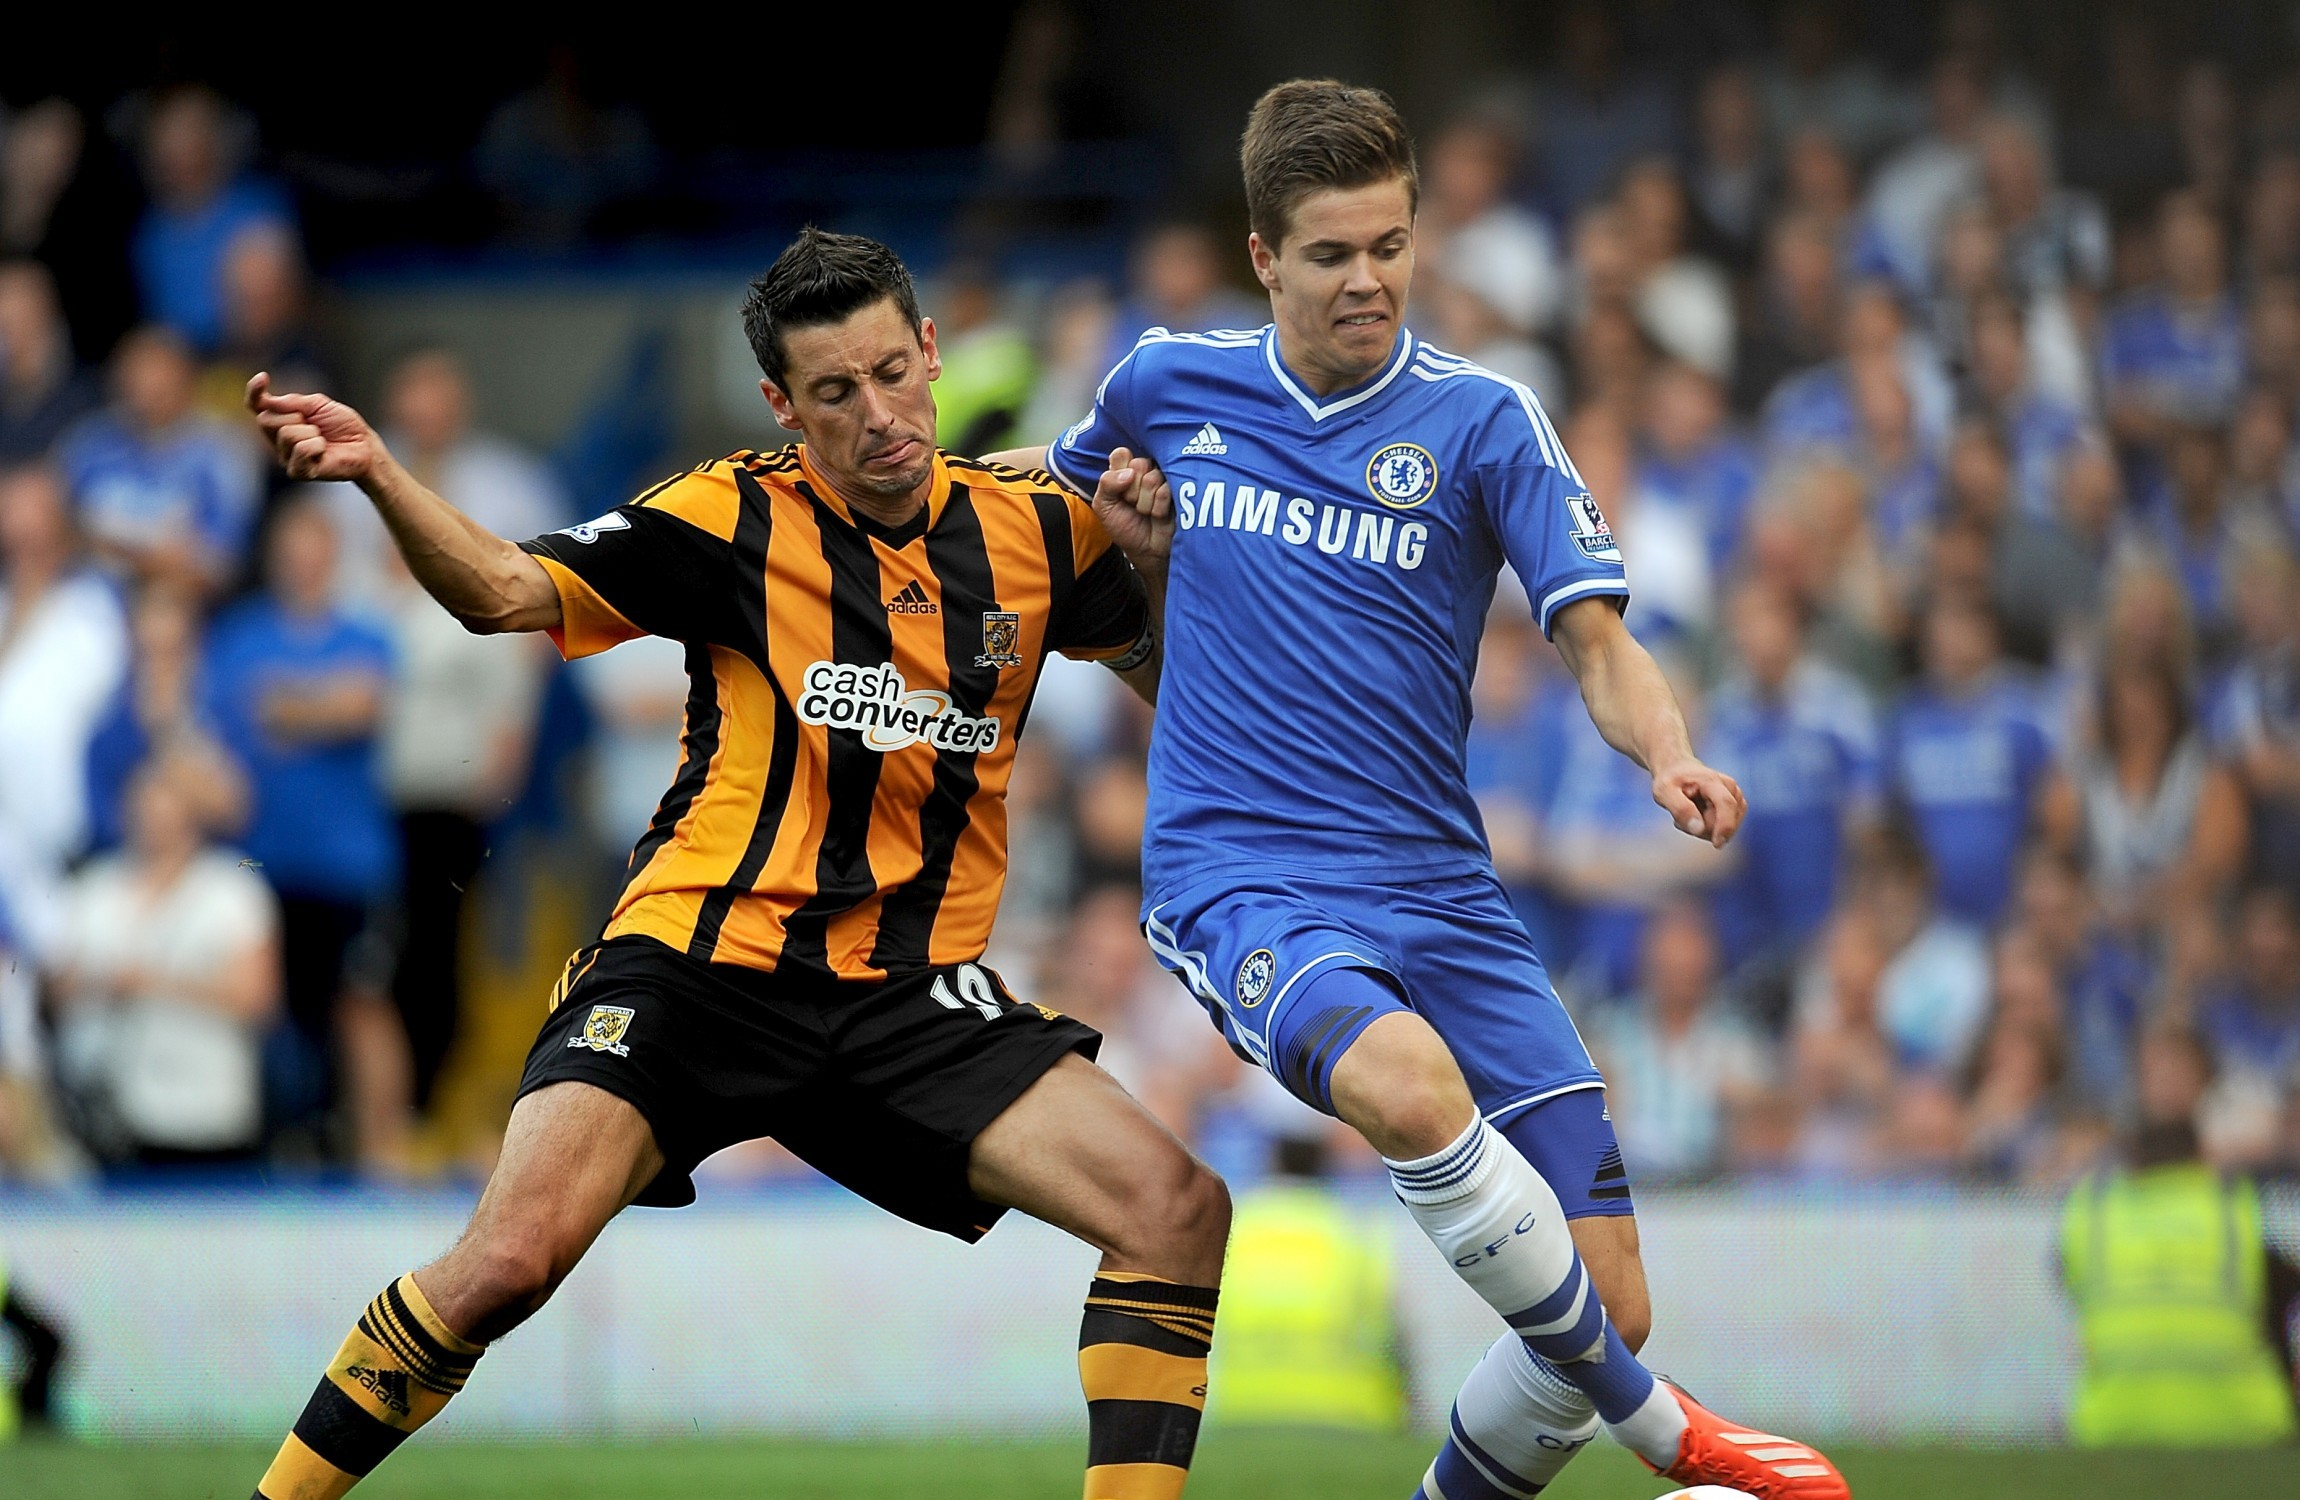 Chelsea midfielder Marco van Ginkel rejoins PSV on season-long loan deal